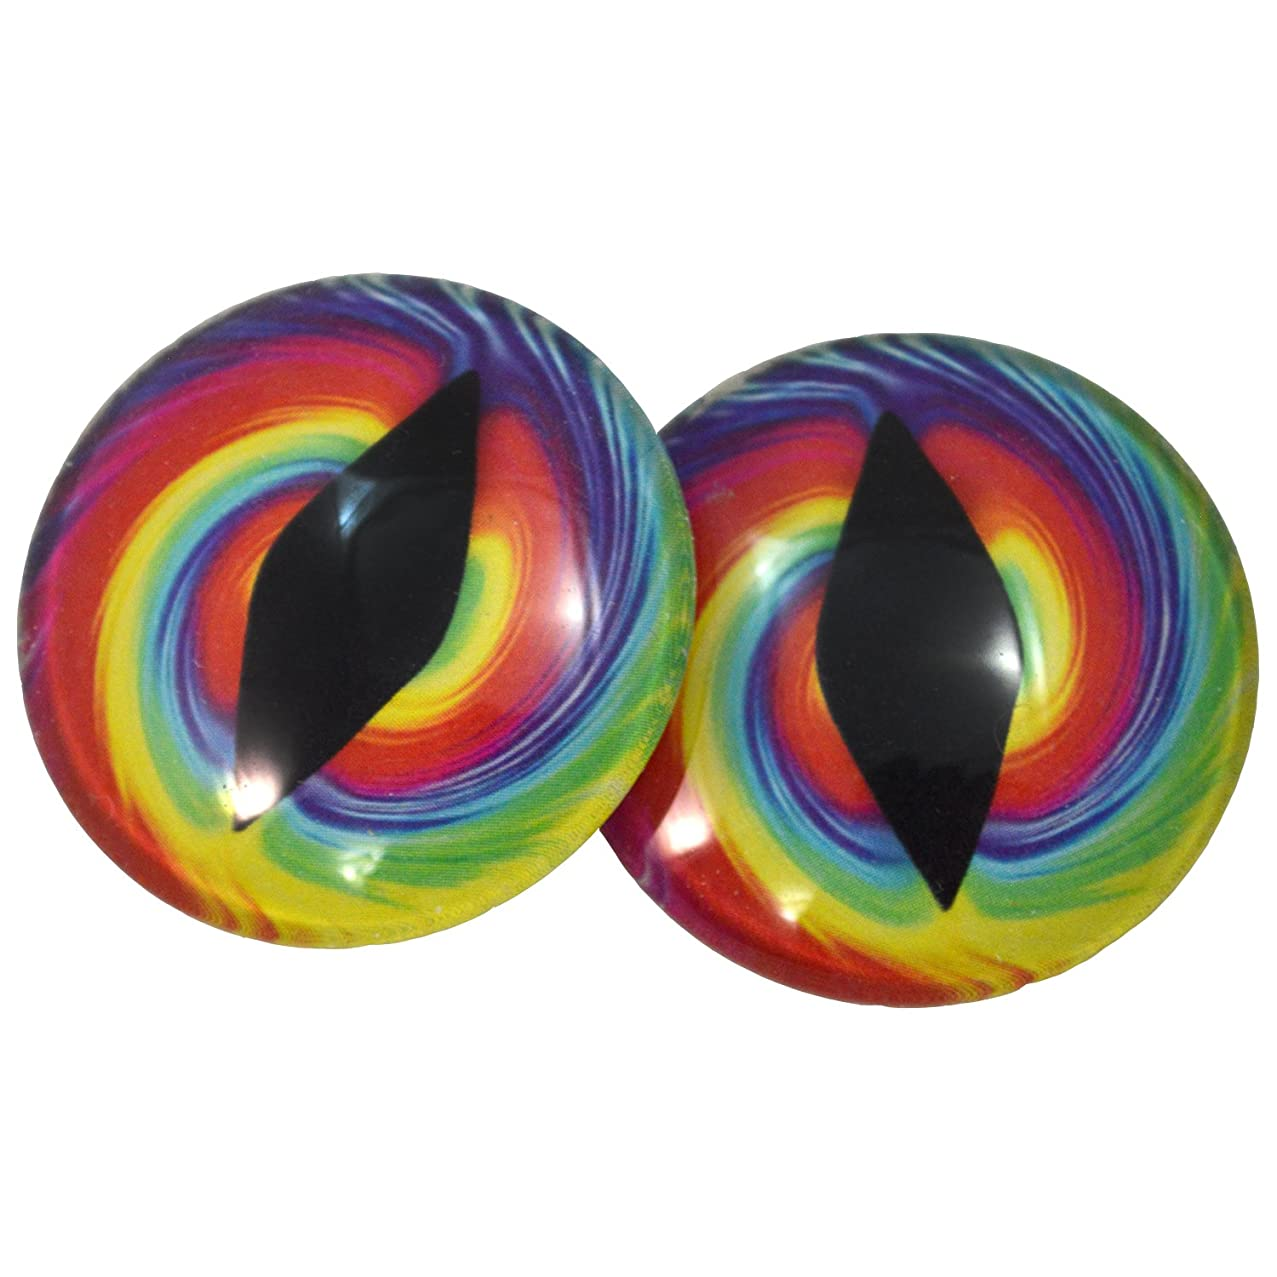 40mm Big Glass Eyes Colorful Tie Dye Dragon or Cat Eyes for Fantasy Taxidermy Sculptures or Jewelry Making Crafts